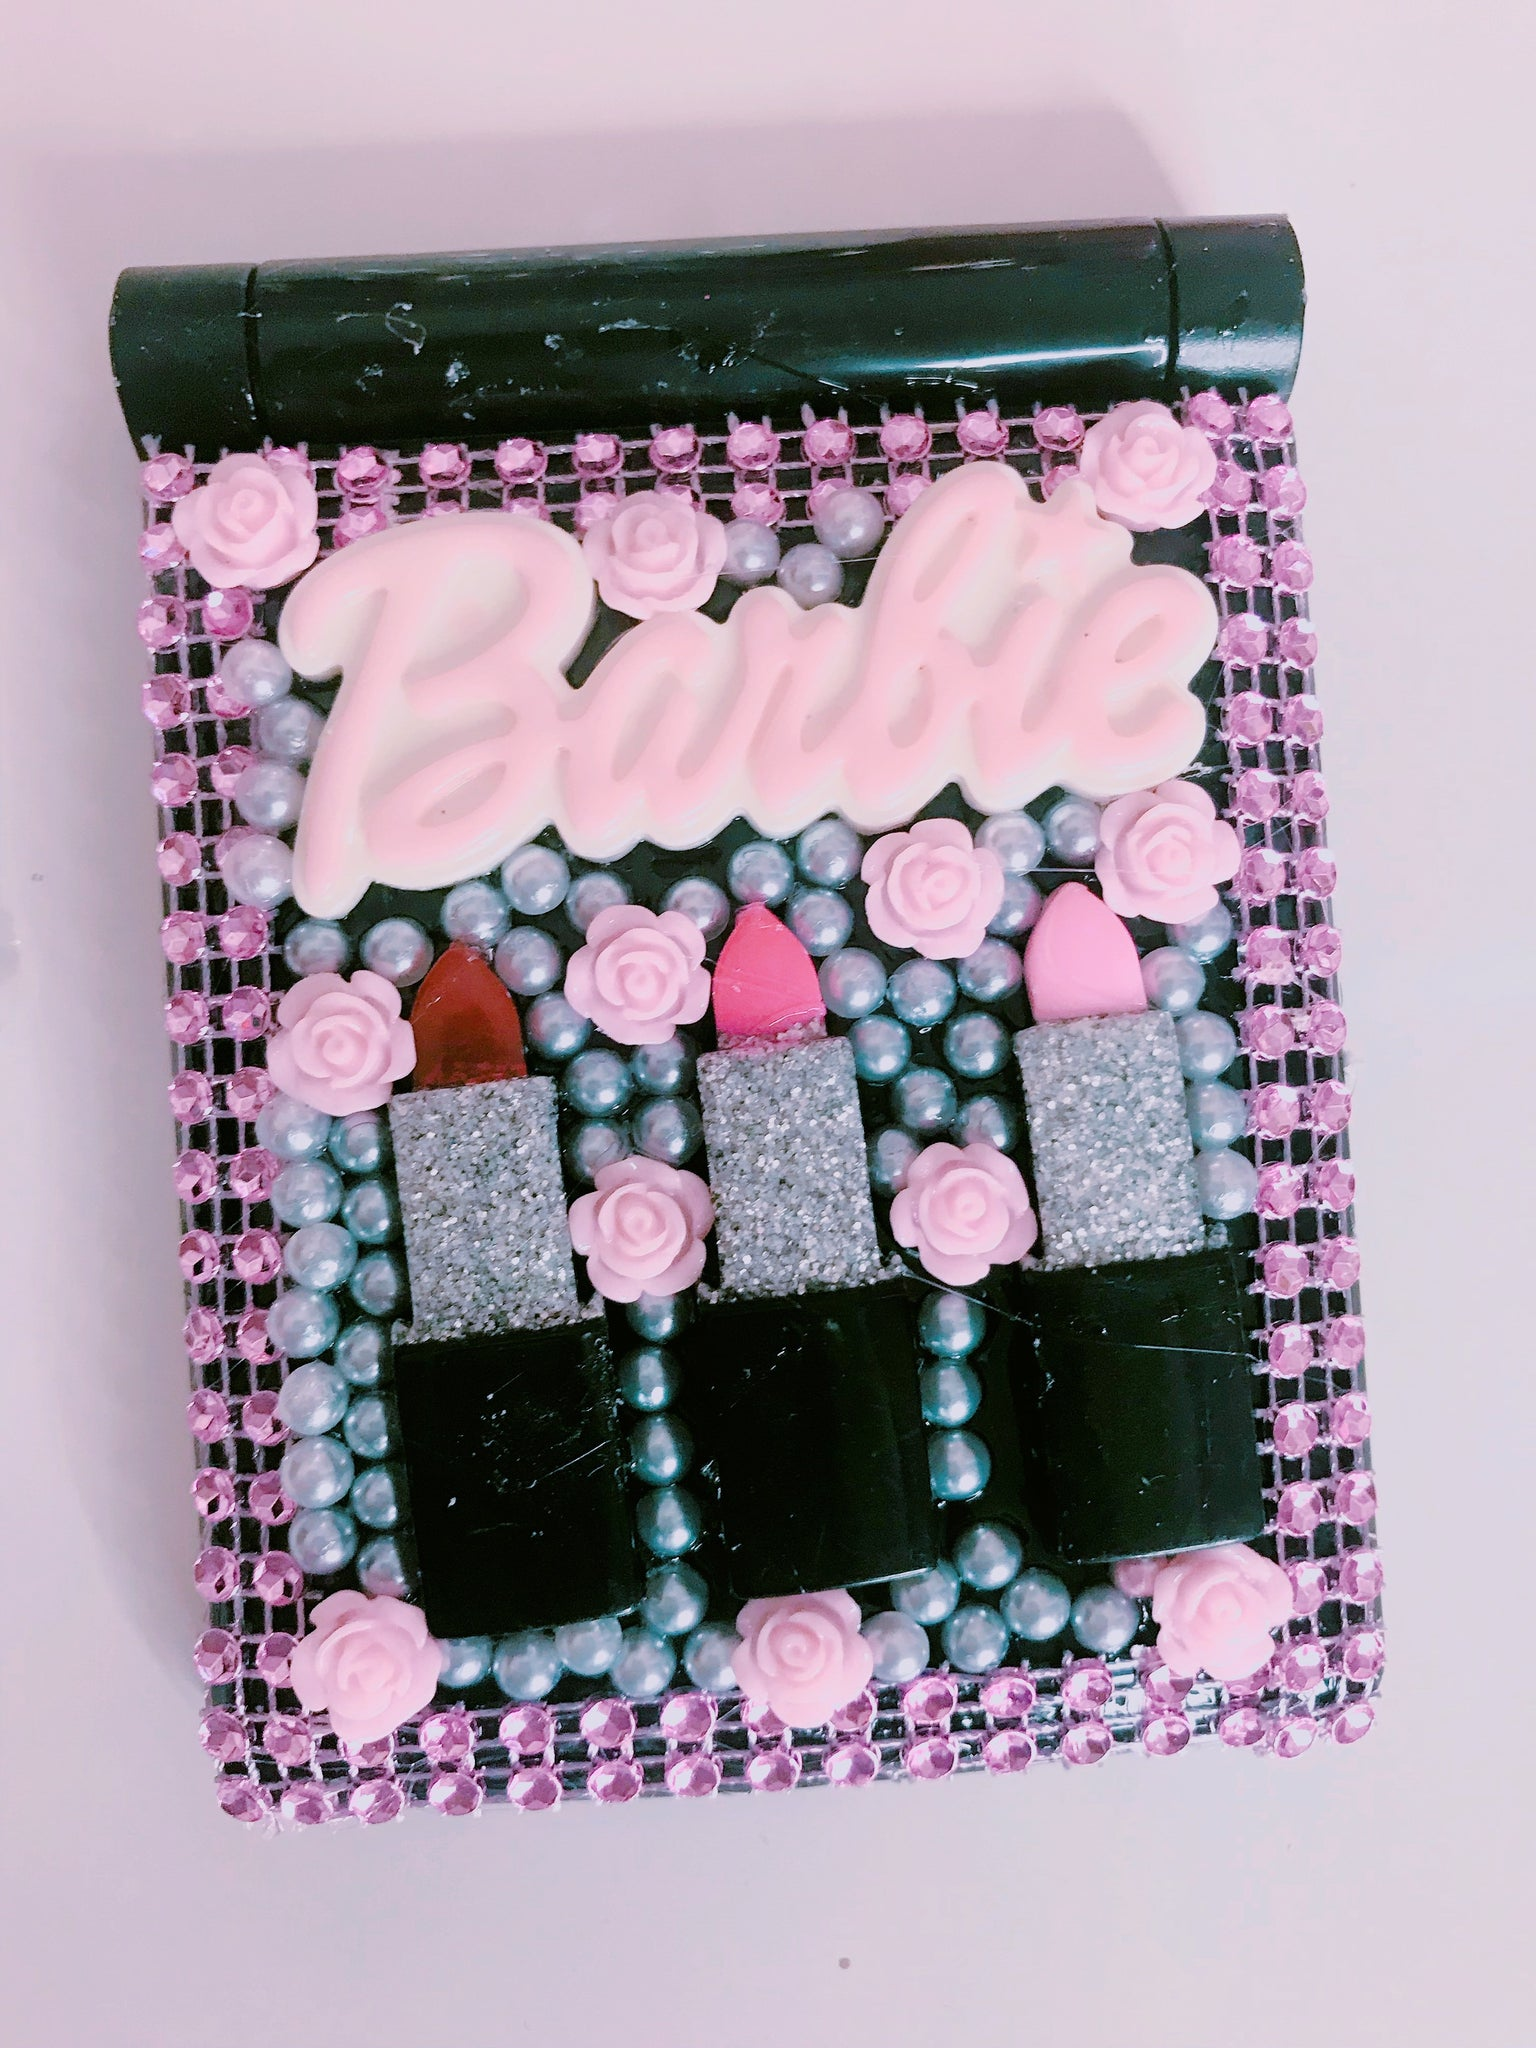 Lipstick Barbie compact mirror with lights